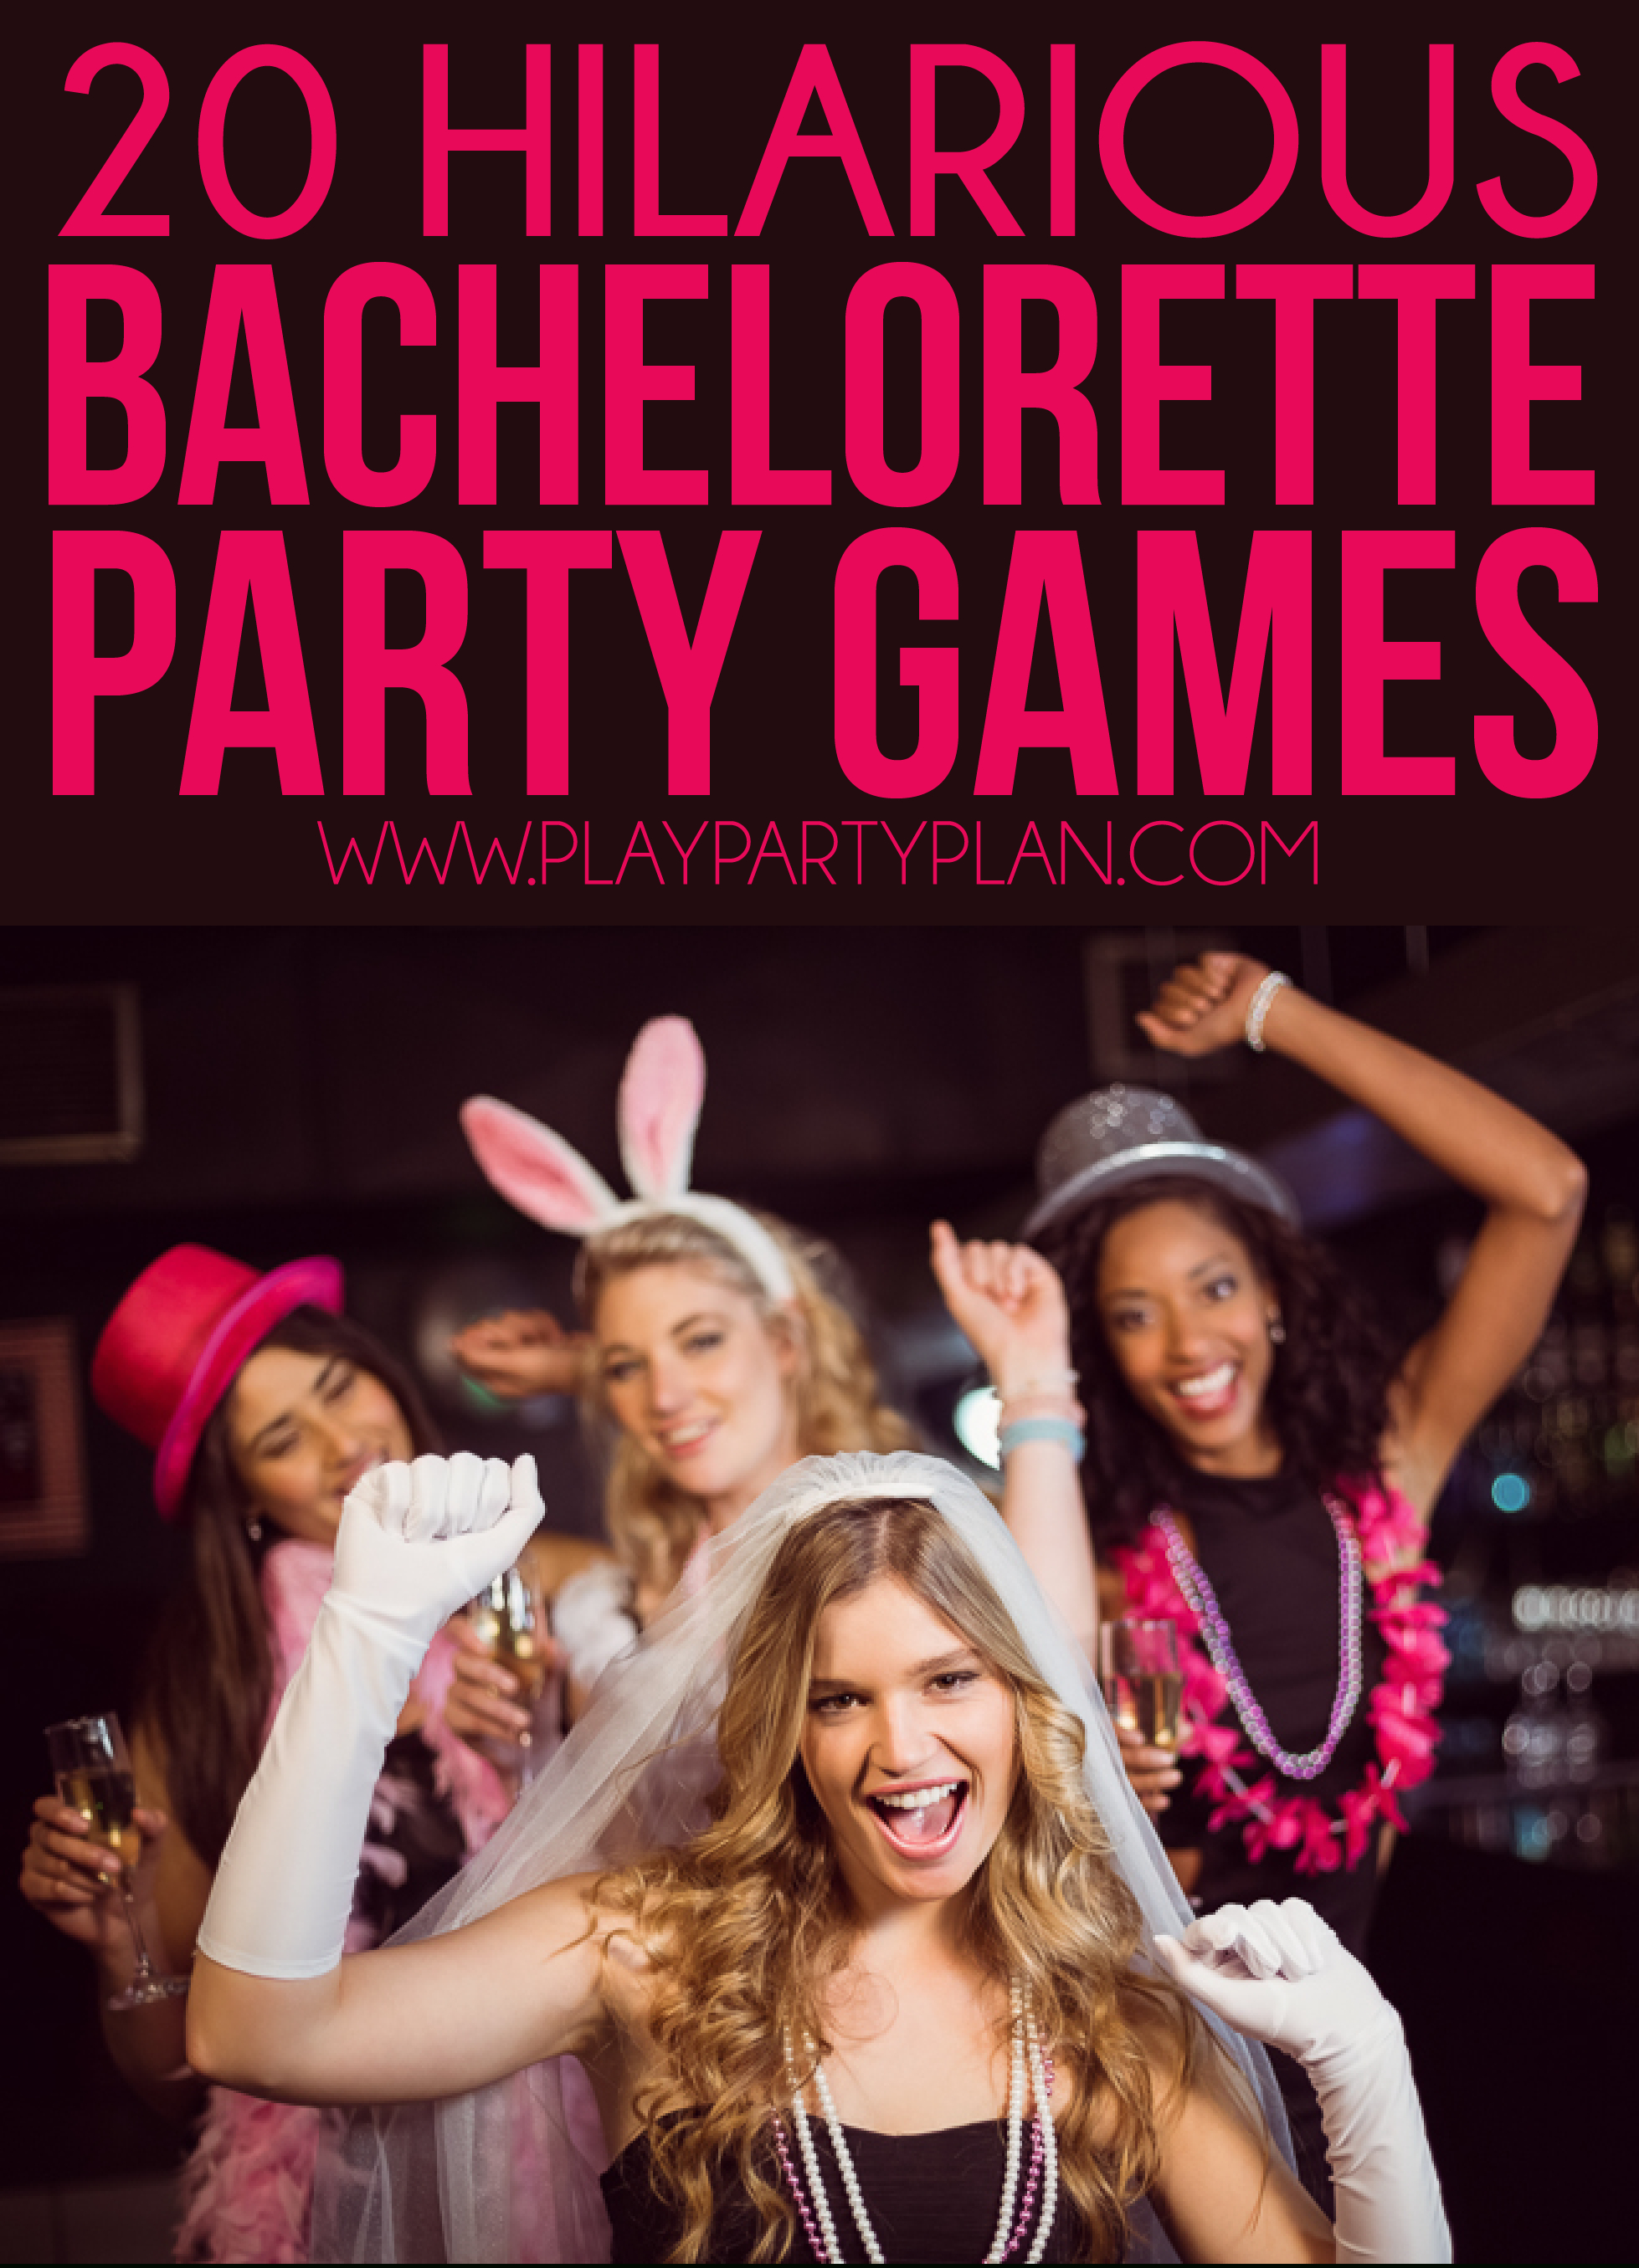 20 Hilarious Bachelorette Party Games That'll Have You Laughing All - Free Printable Women's Party Games